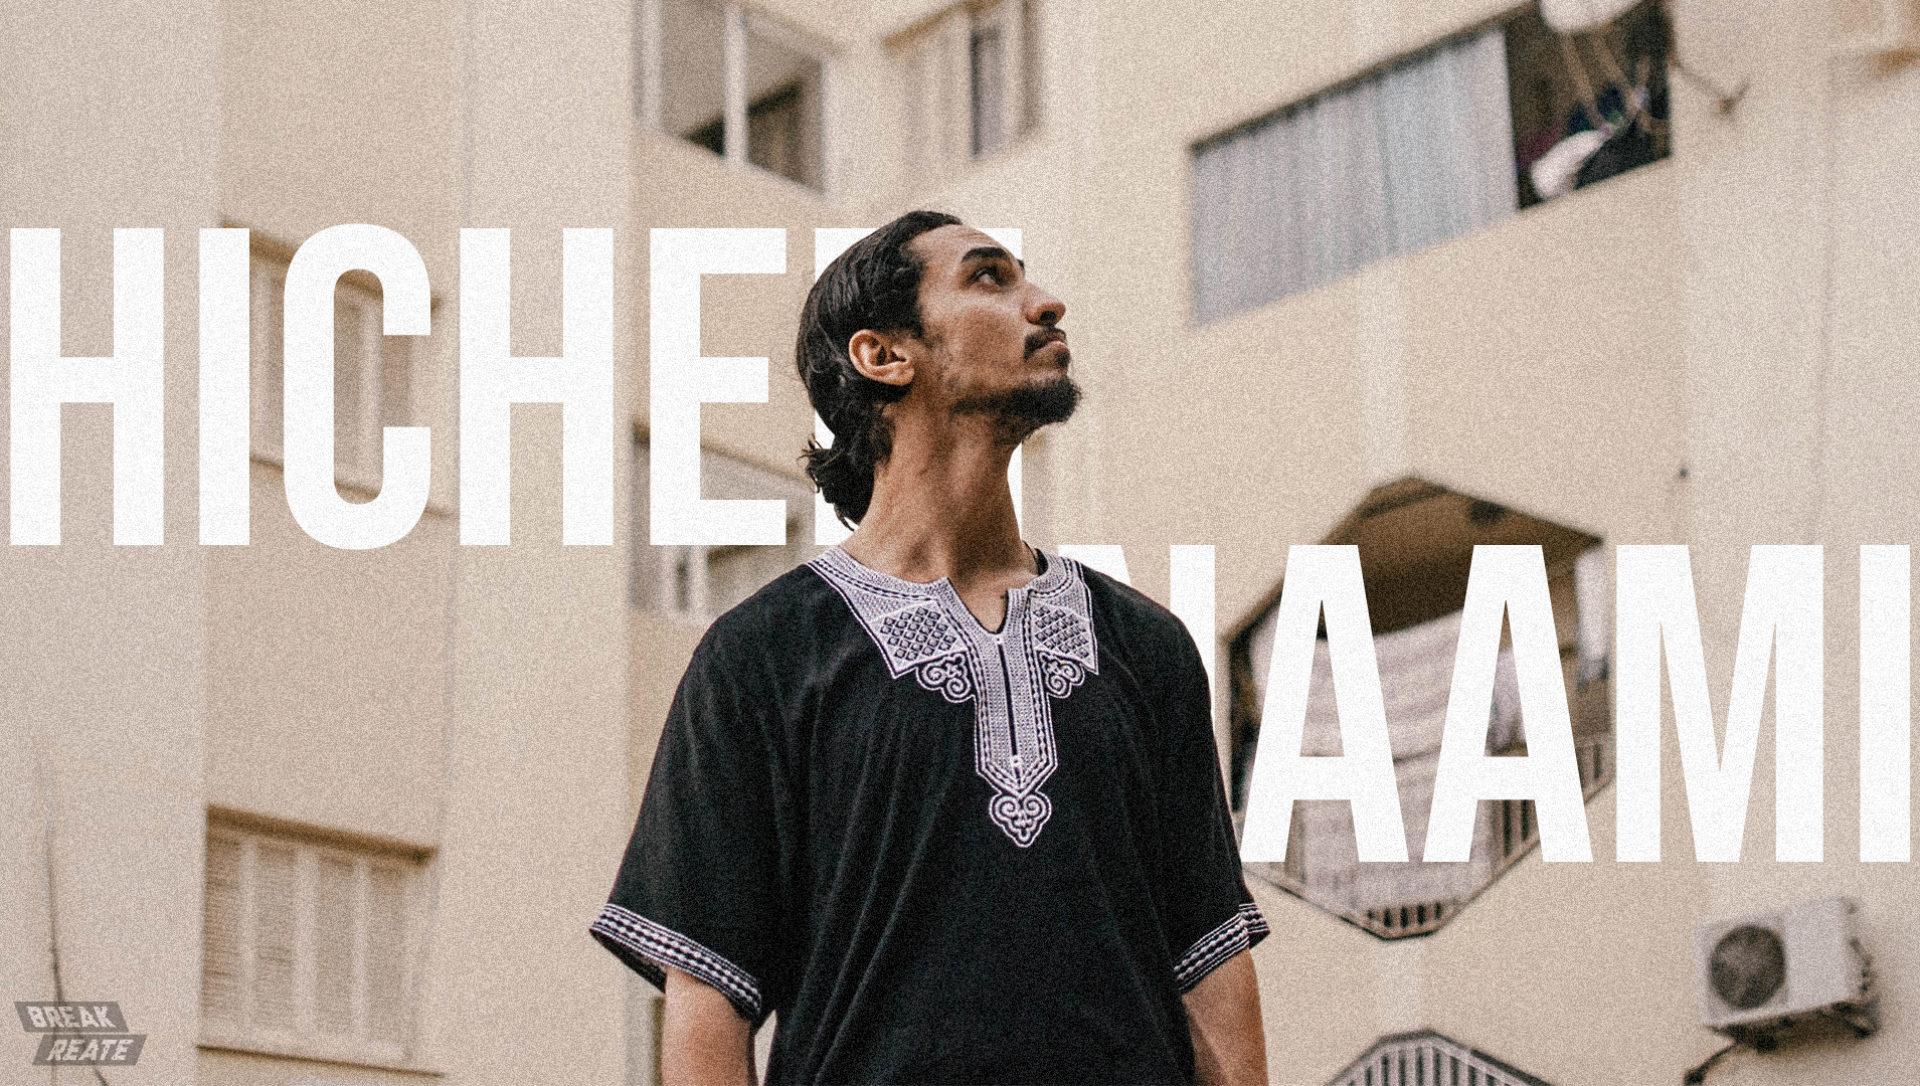 Hichem Naami: Building The Parkour Community In Tunisia